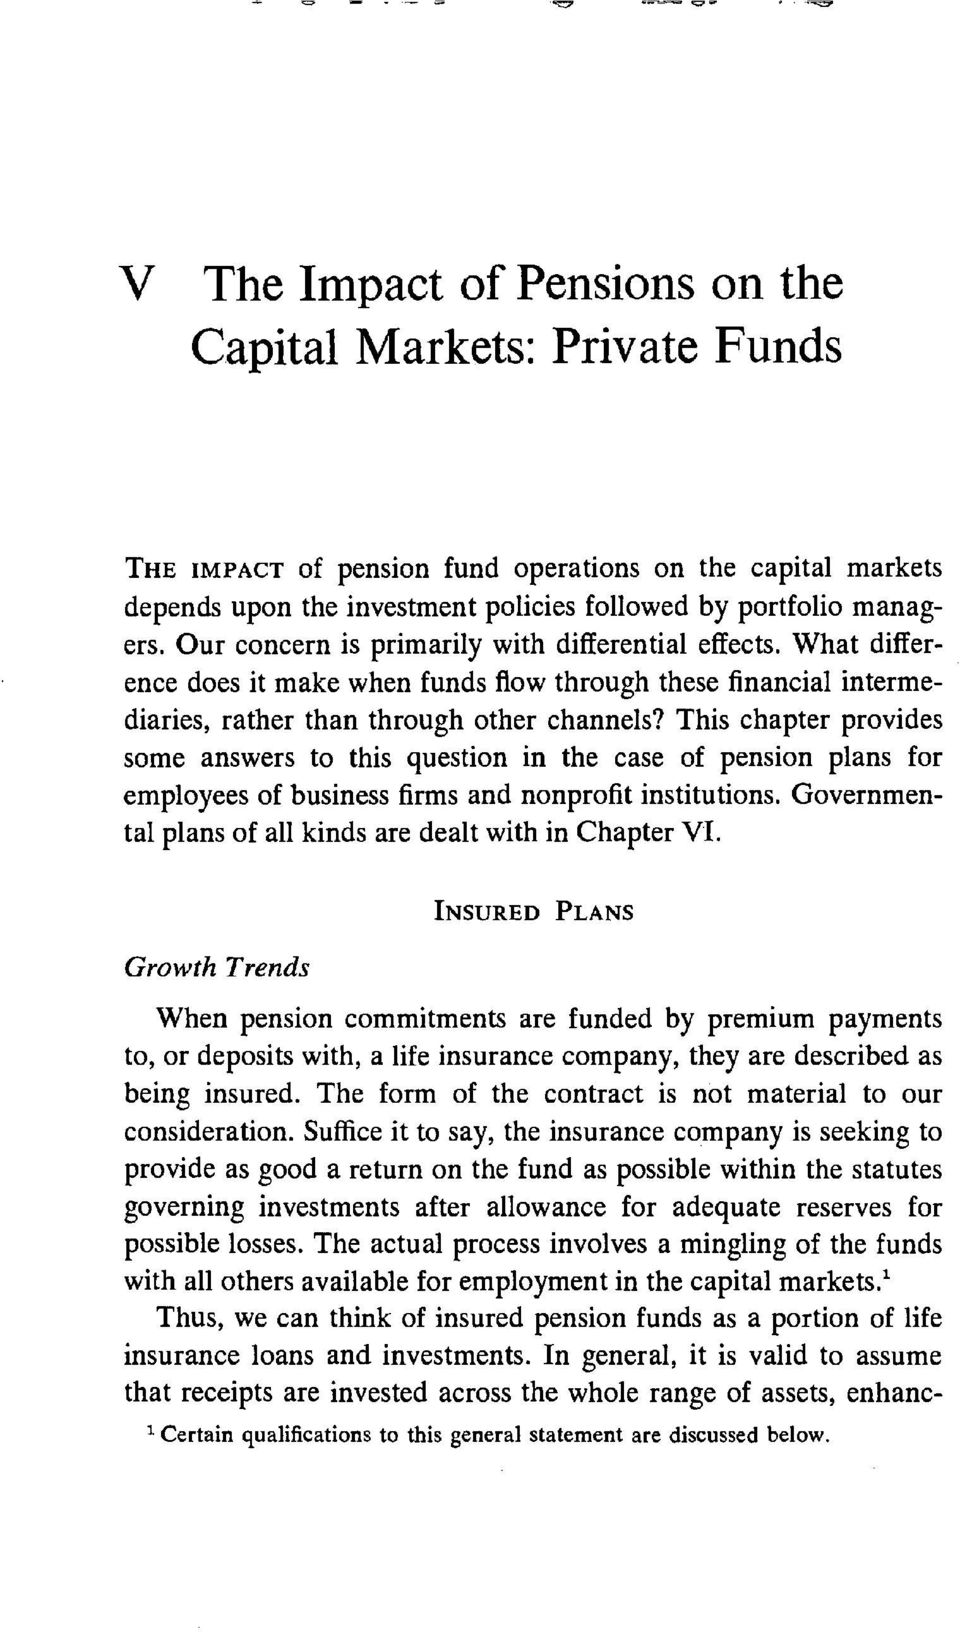 This chapter provides some answers to this question in the case of pension plans for employees of business firms and nonprofit institutions.